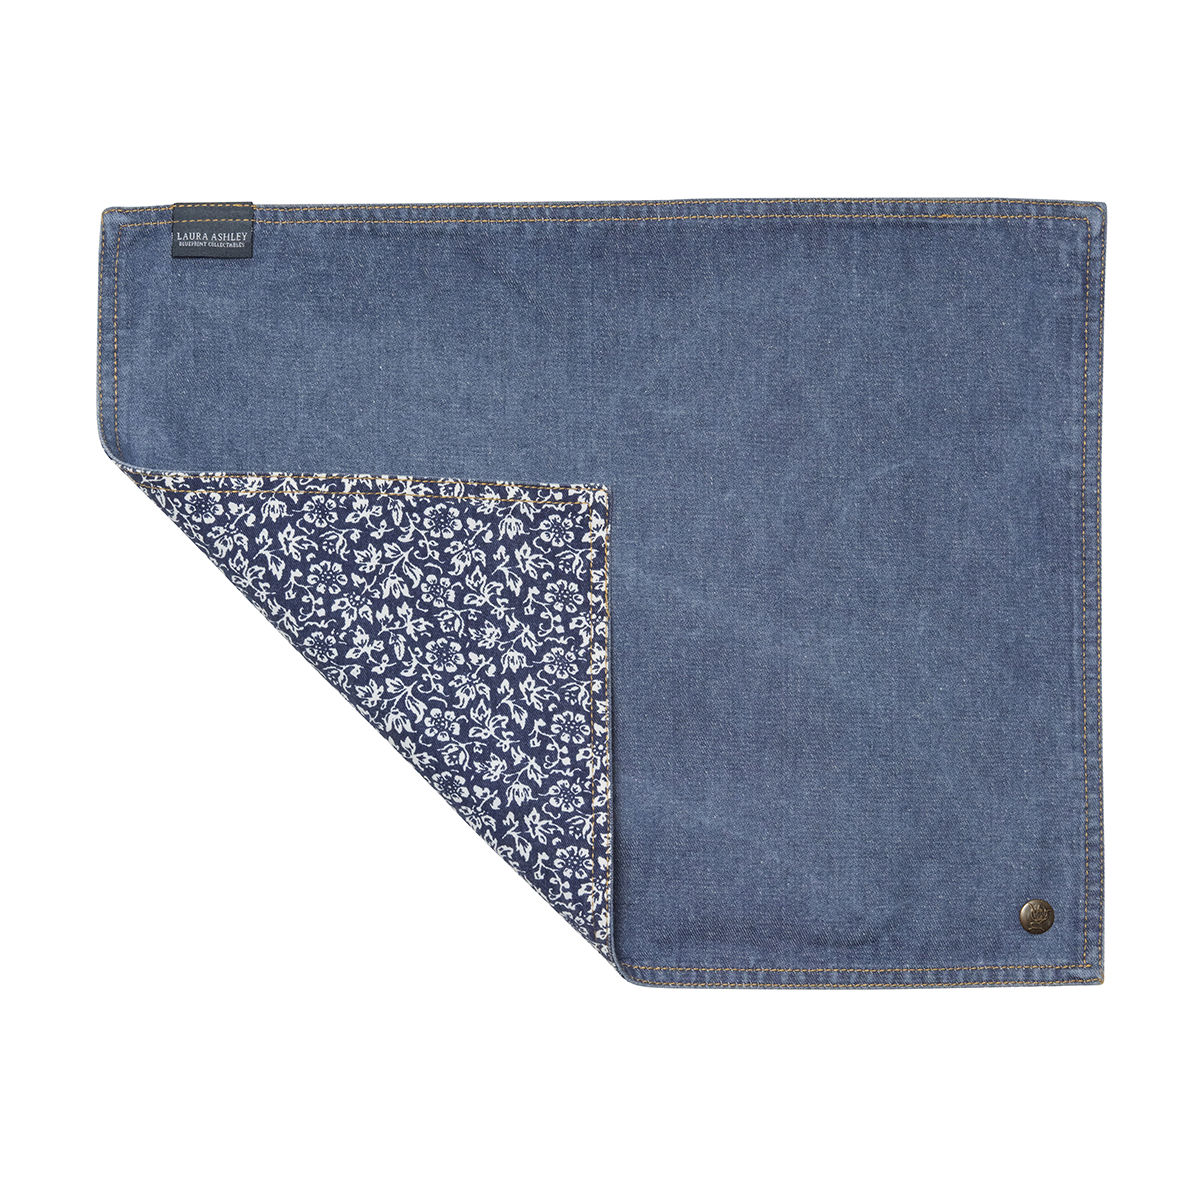 Laura Ashley Placemat Jeans/Sweet Allysum - product images  of